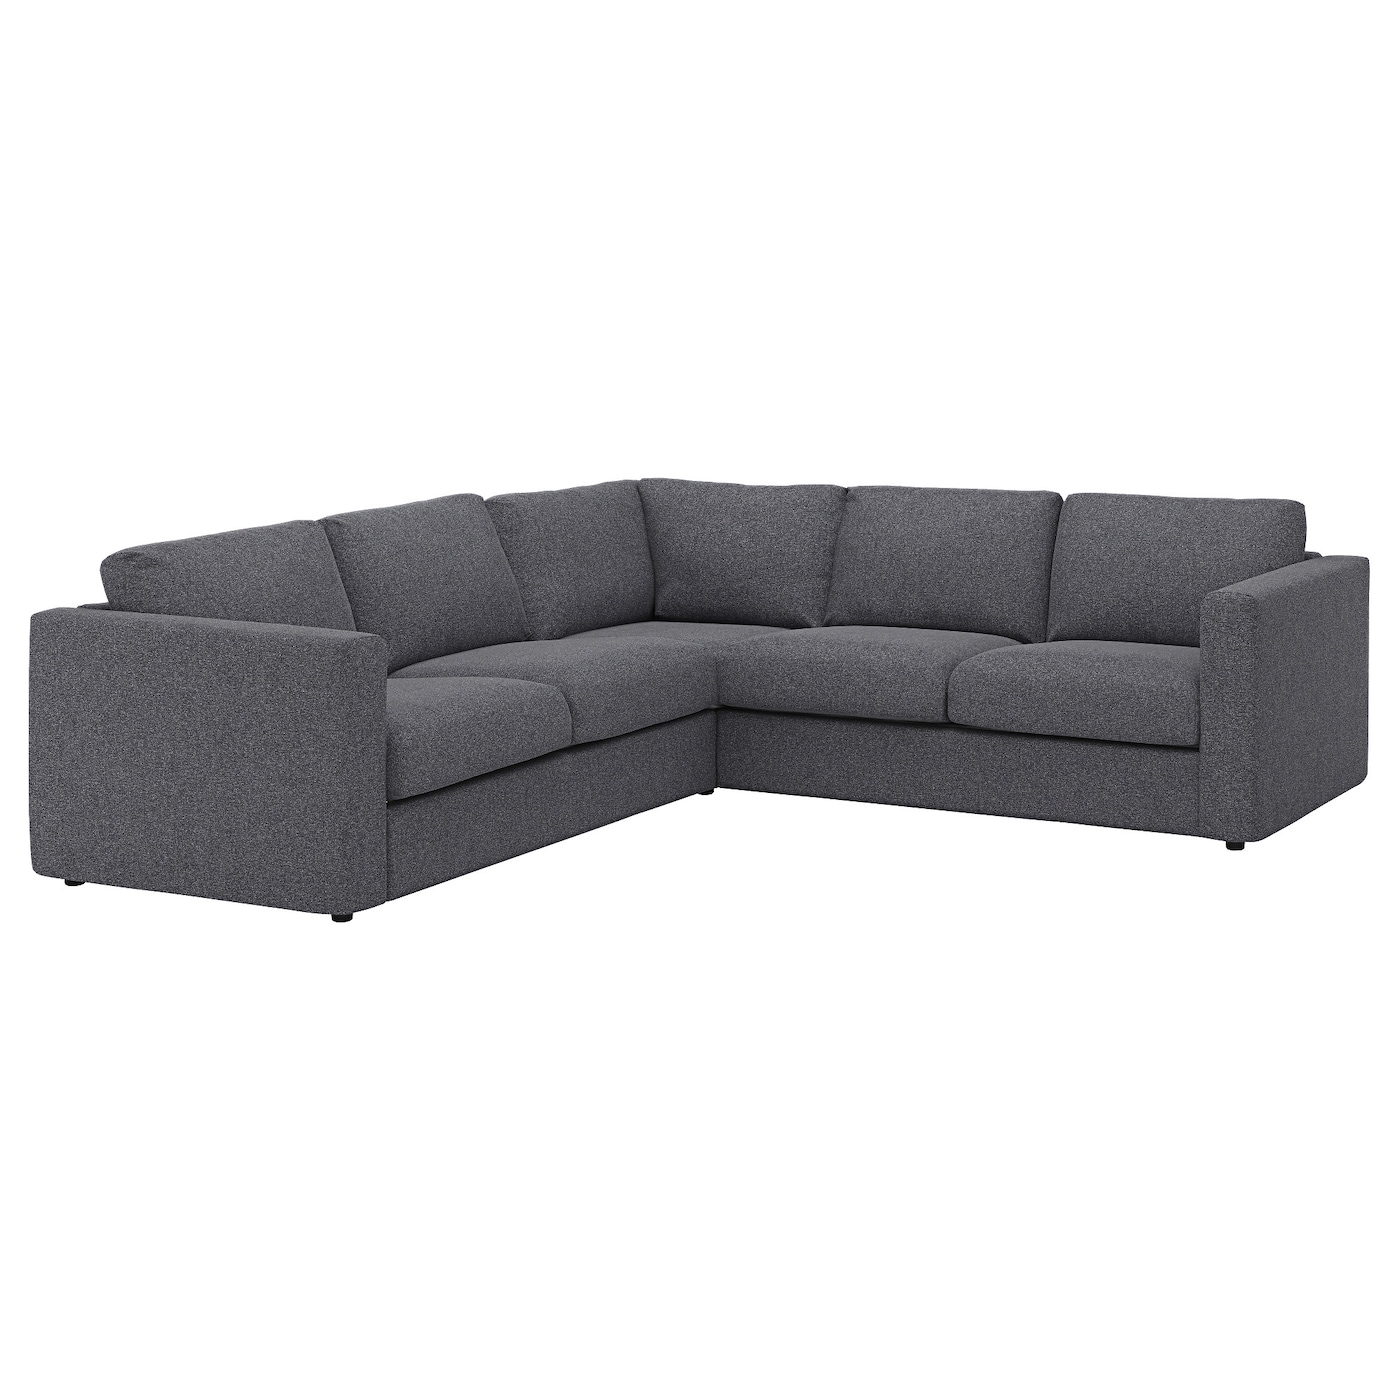 vimle corner sofa 4 seat gunnared medium grey ikea. Black Bedroom Furniture Sets. Home Design Ideas